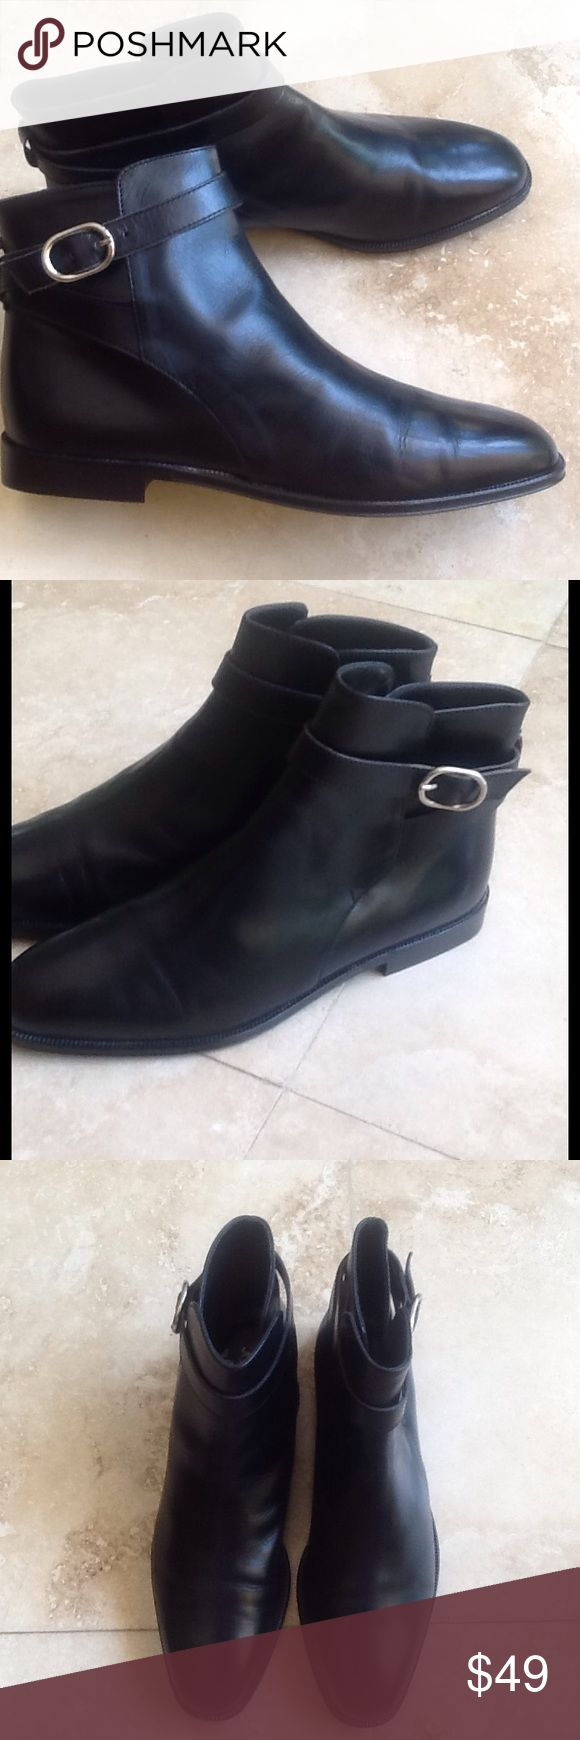 Joan & David Couture Boots NWOT Made in Italy .... Ankle black leather boots. Heel height is 3/4 inch. Silver buckle on side of each boot. Never worn out side of store. Classic tailored look. Joan & David Couture Shoes Ankle Boots & Booties